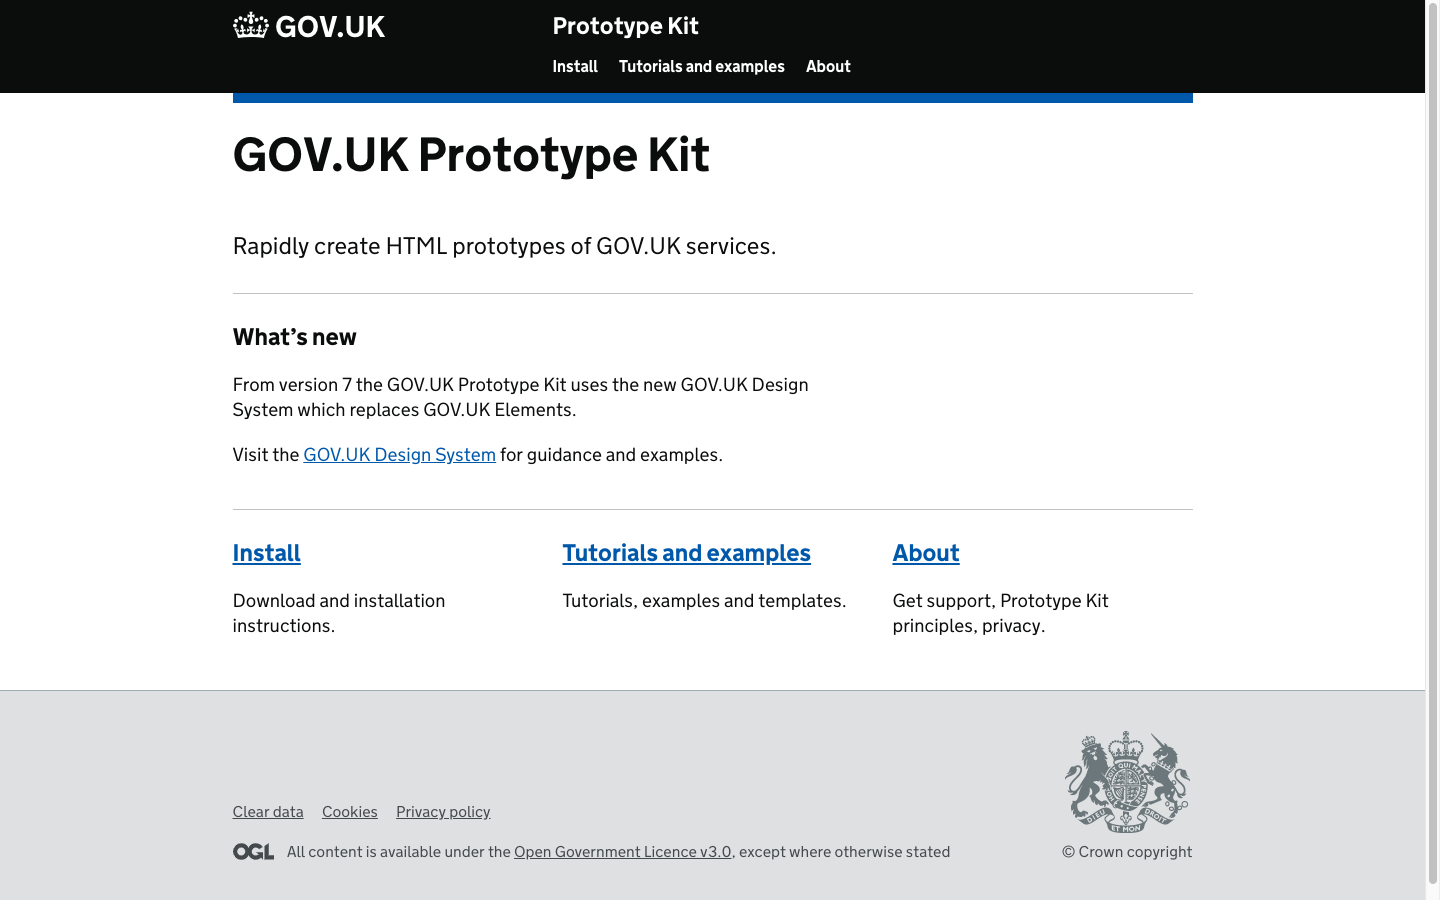 A screenshot showing the prototype kit front page